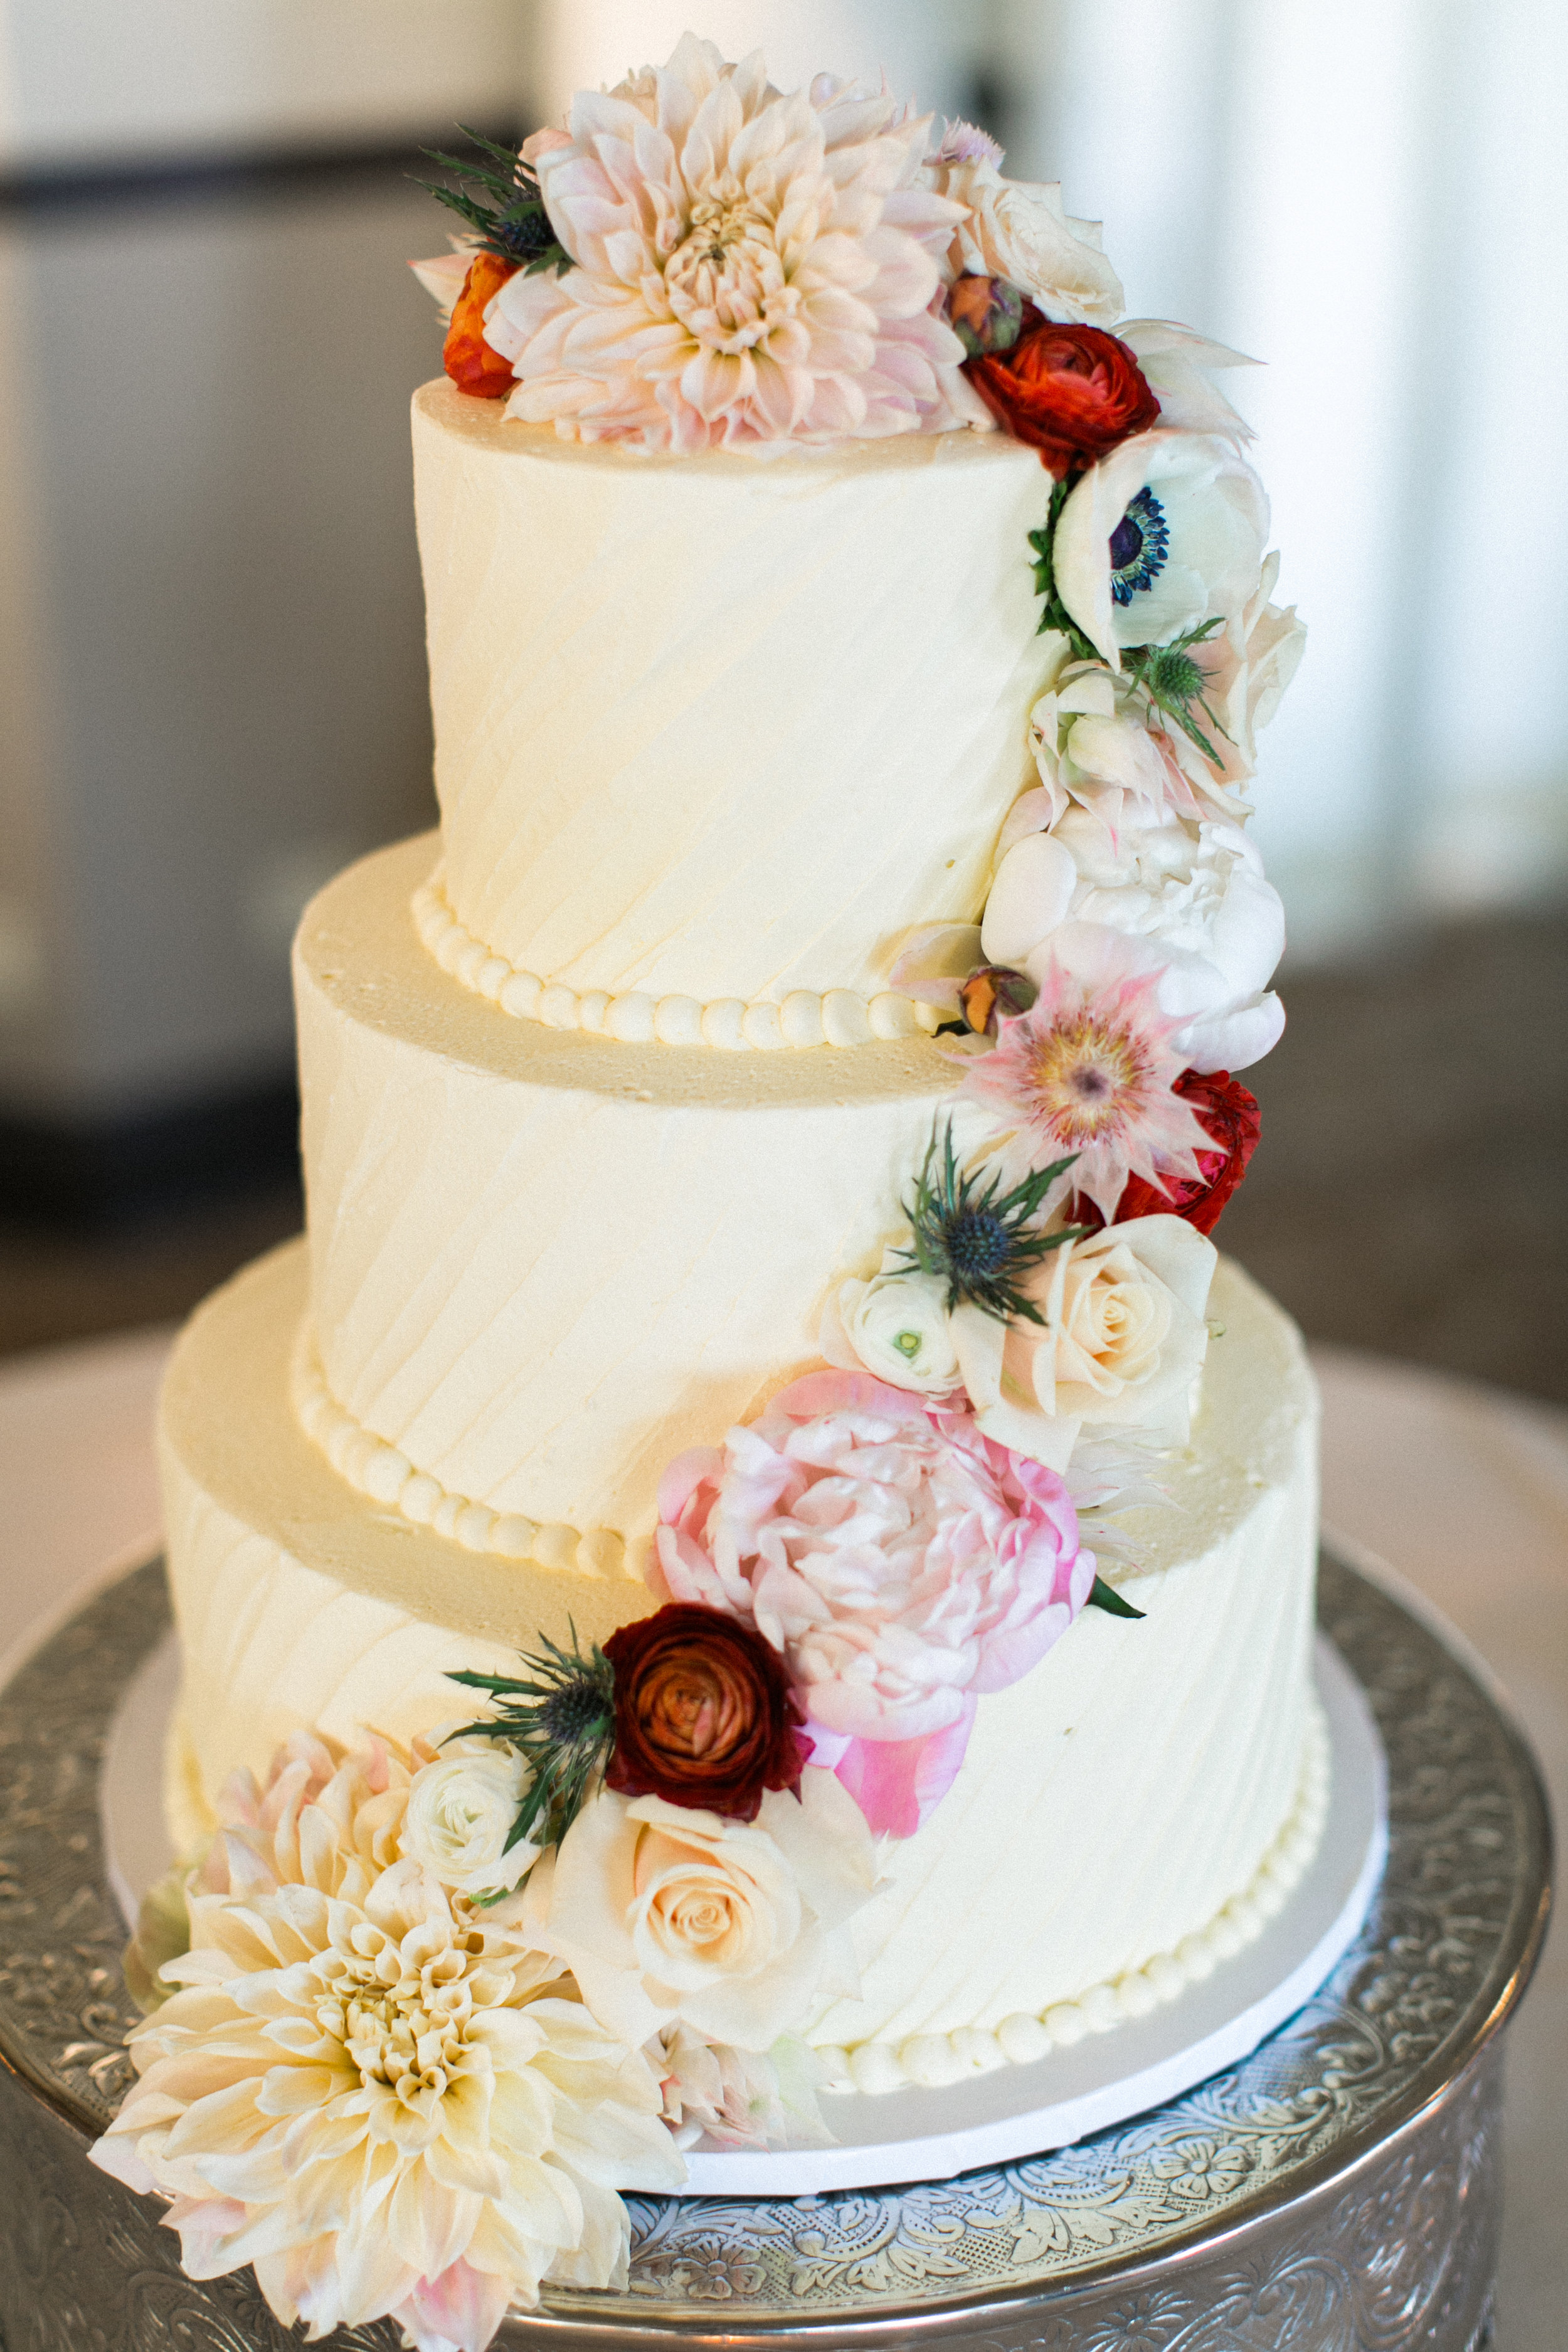 Rachael + David  // Photographer:  Laura Ford , Cake:  Top Tier Treats , Flowers: The Flower Lab